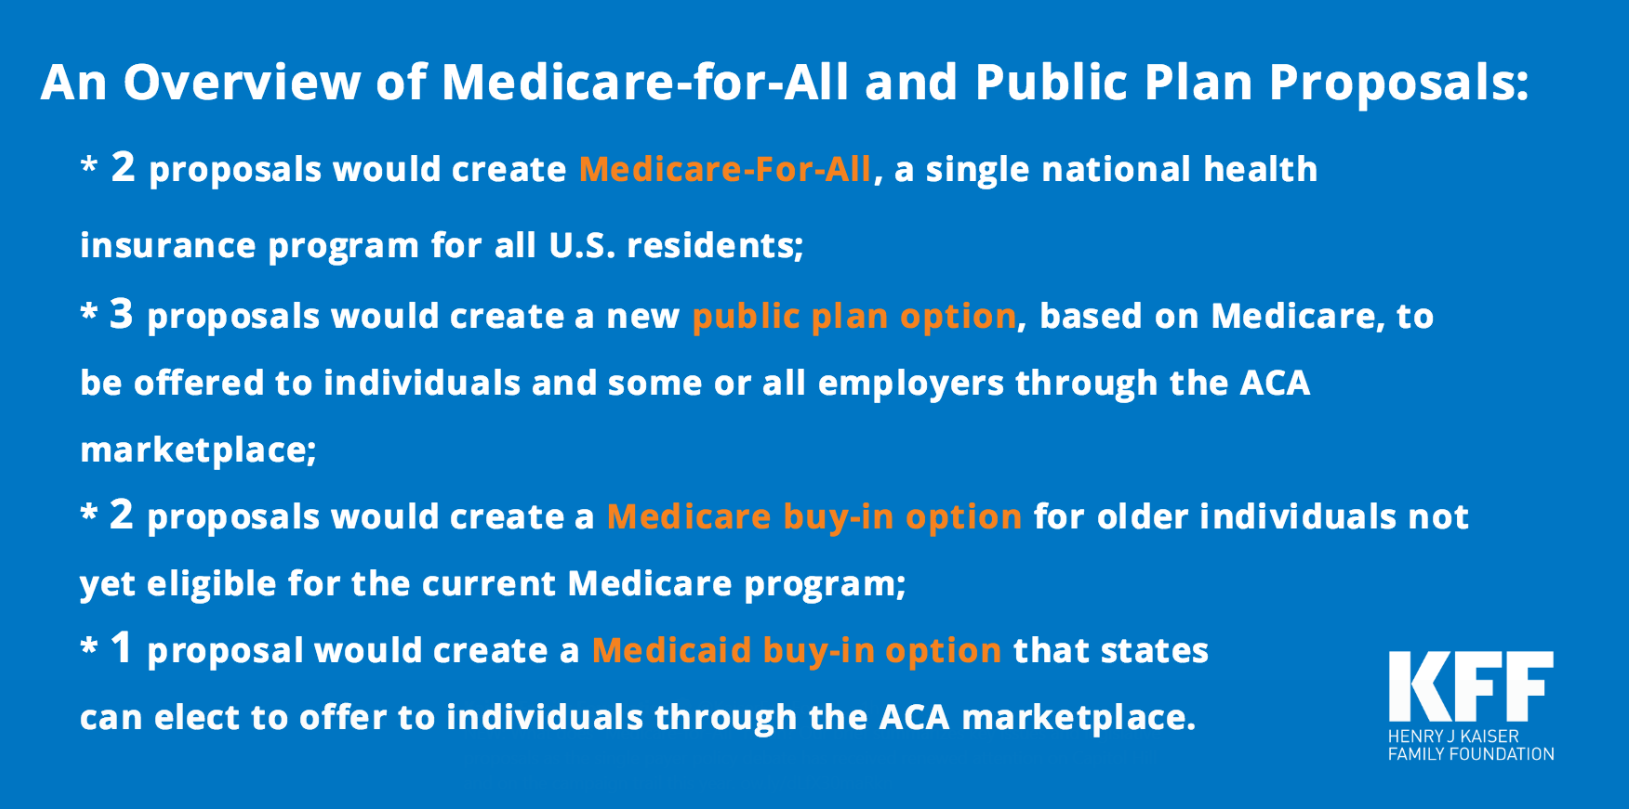 a5508998b528 Medicare-for-All and Public Plan Buy-In Proposals  Overview and Key Issues  – Issue Brief – 9242